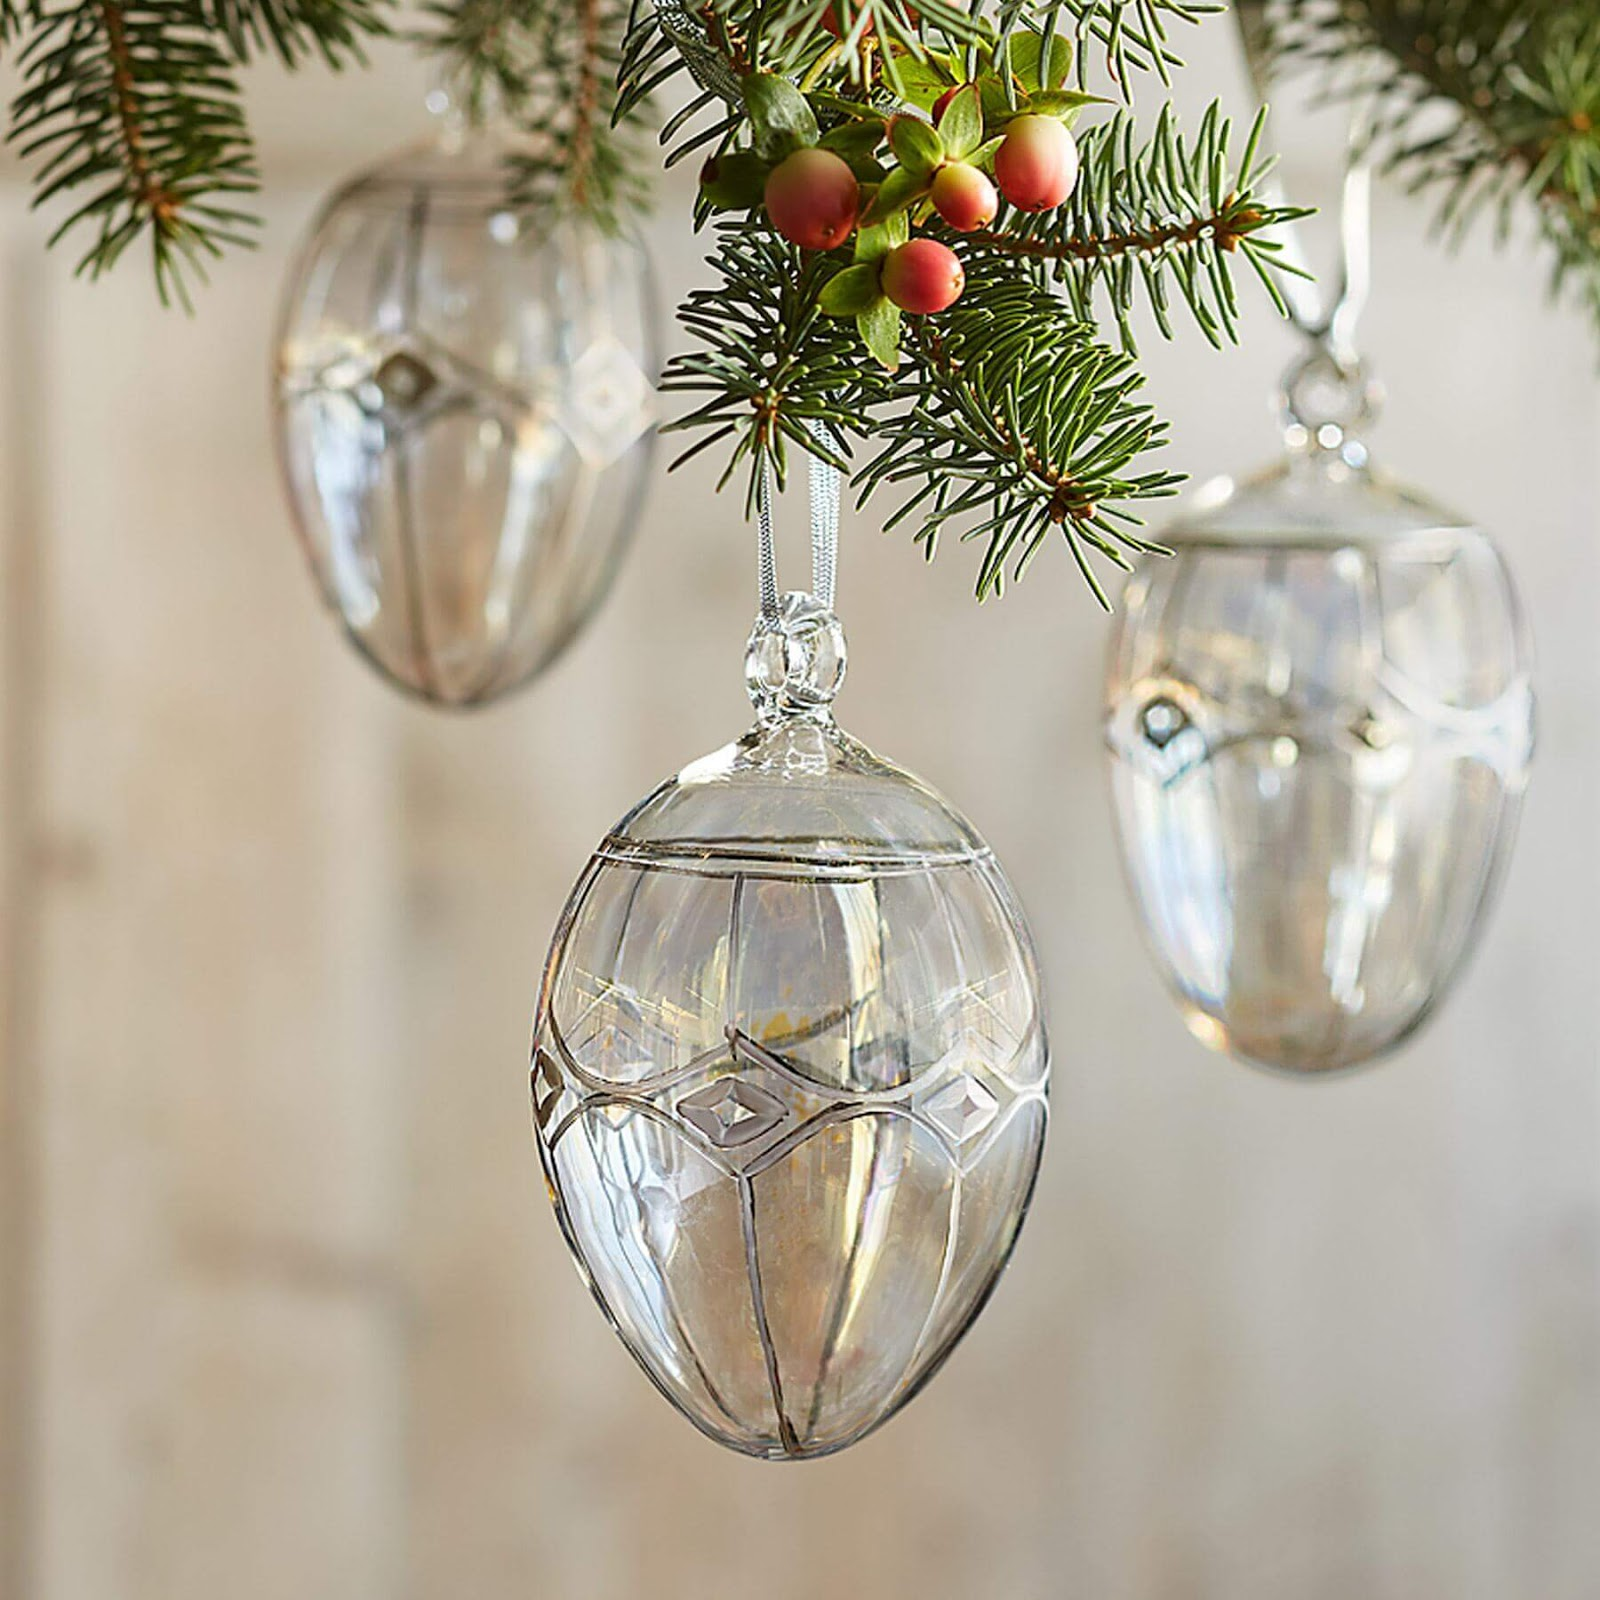 Brilliant Glass Egg Ornaments hanging from a tree.